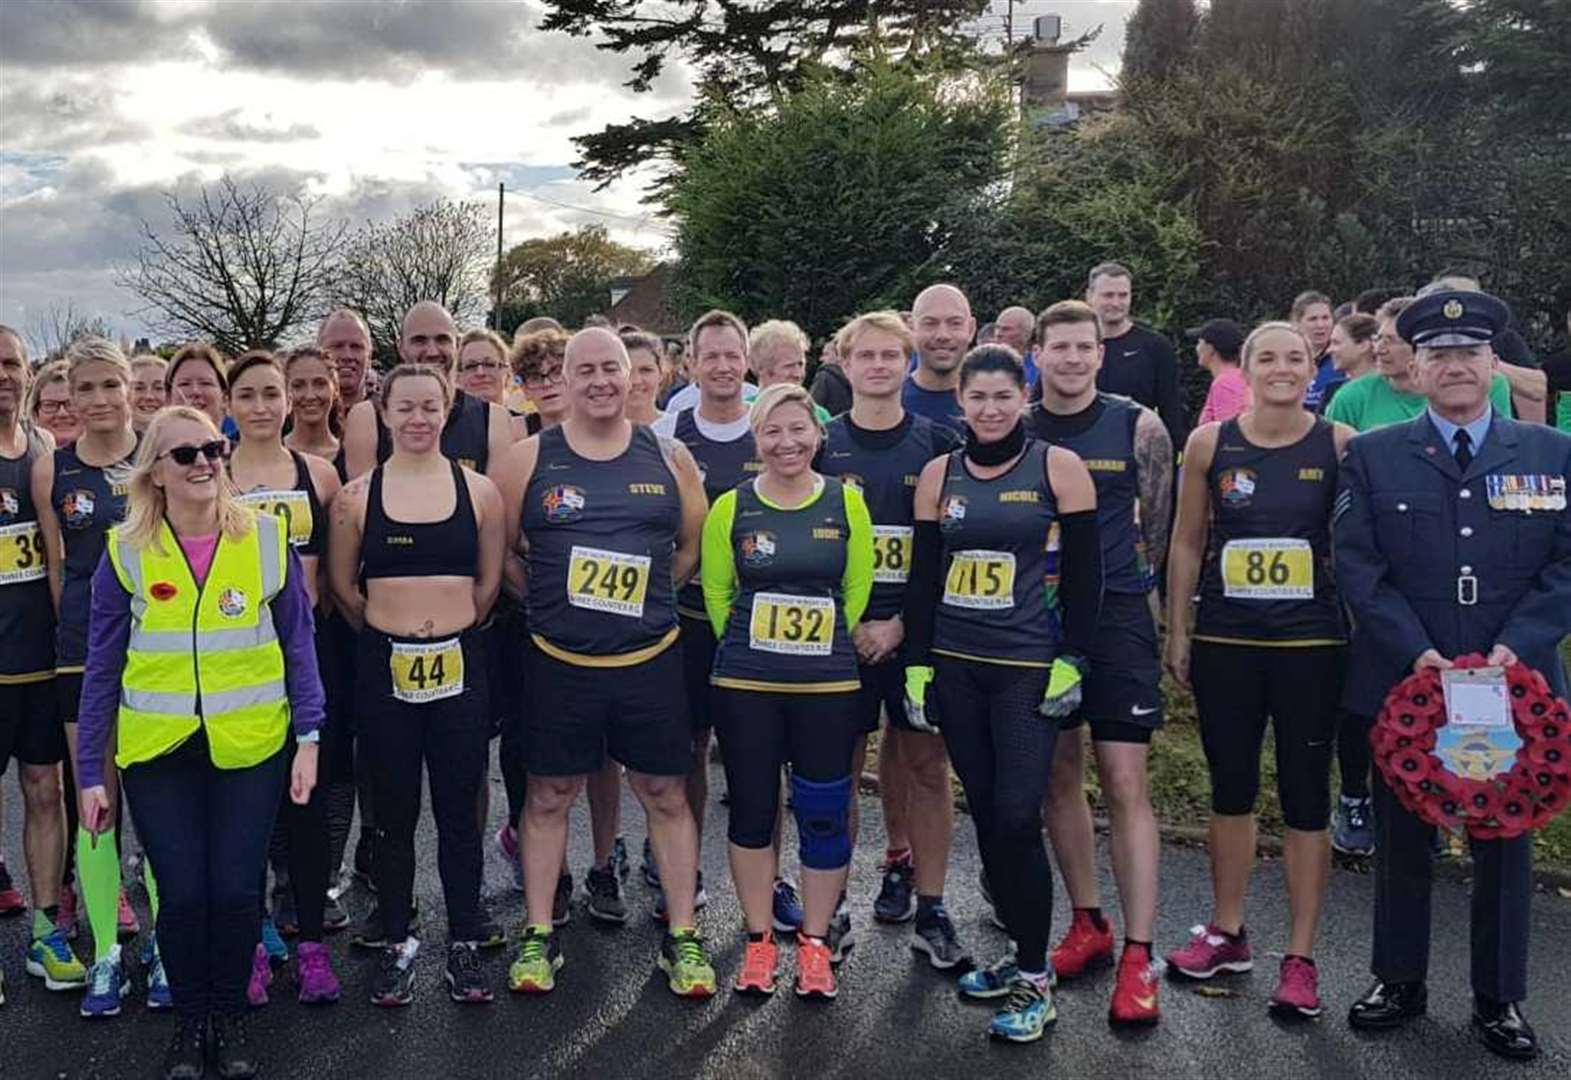 Remembrance Sunday commemorated at Leverington Three Counties Running Club in 10K race tribute to Fallen